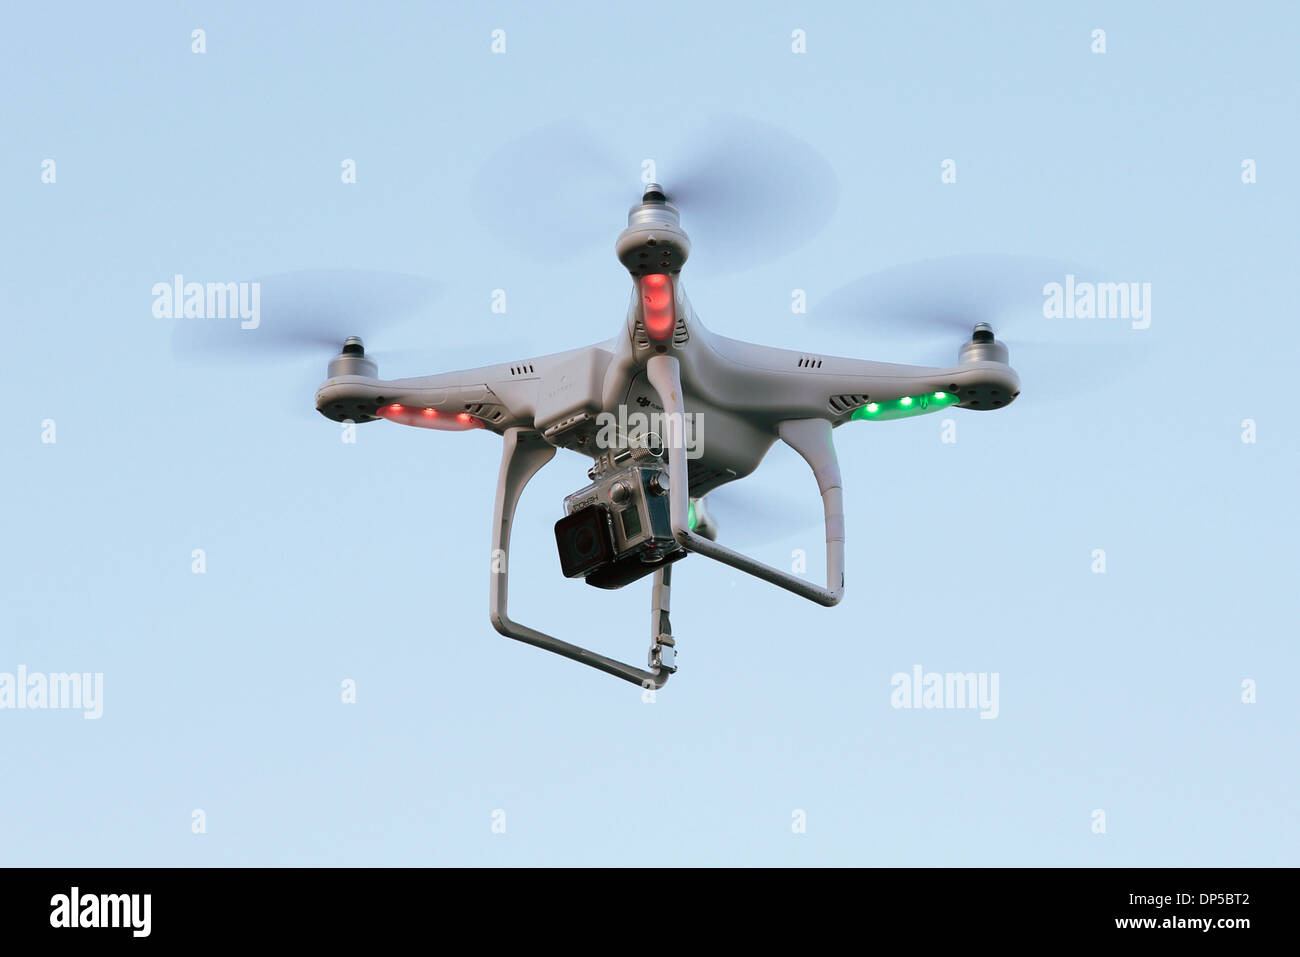 A remote-controlled DJI Phantom video drone in flight. - Stock Image